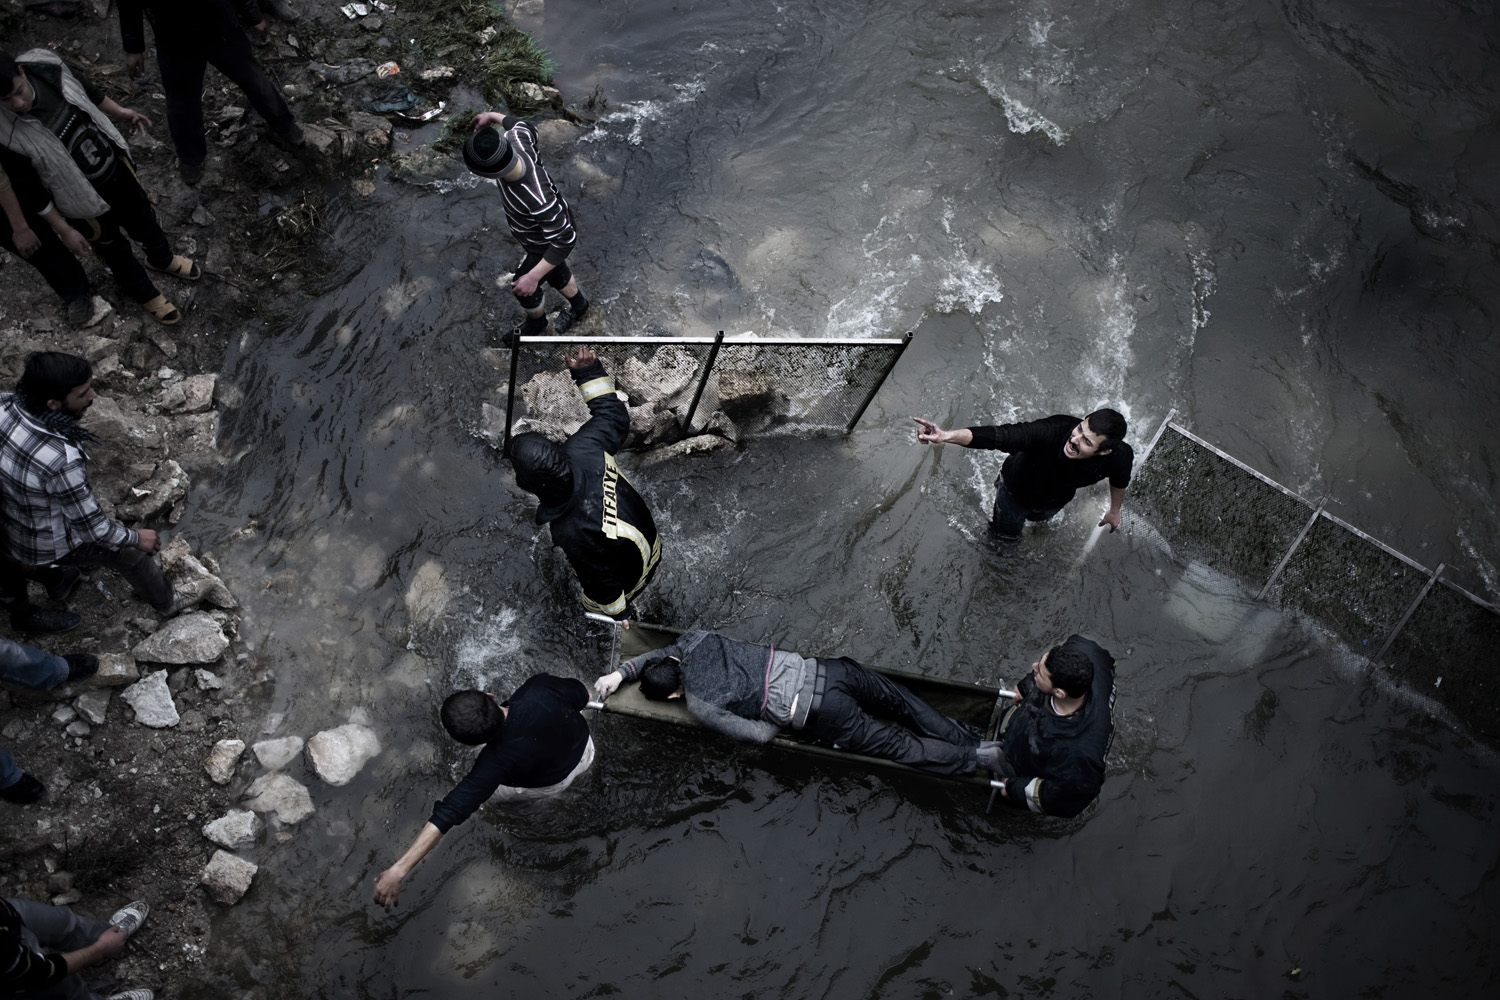 Jan. 30, 2013. Bodies float down a stream in Aleppo, Syria, more than 24 hours after a massacre.